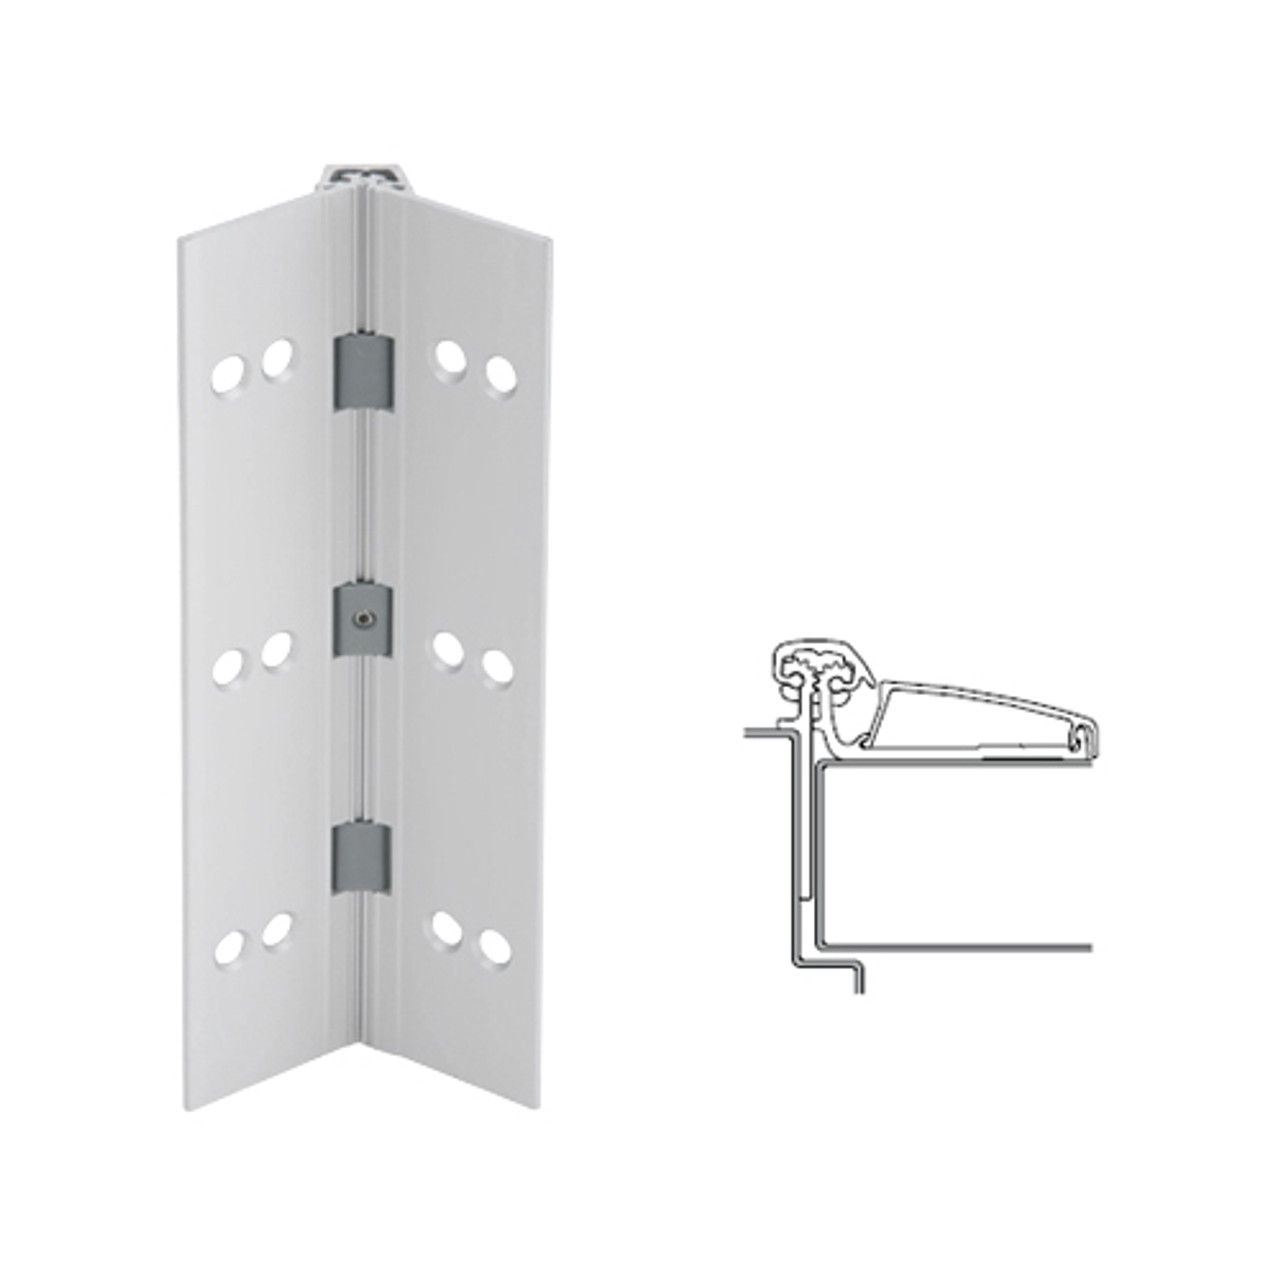 045XY-US28-83-SECWDWD IVES Adjustable Half Surface Continuous Geared Hinges with Security Screws - Hex Pin Drive in Satin Aluminum